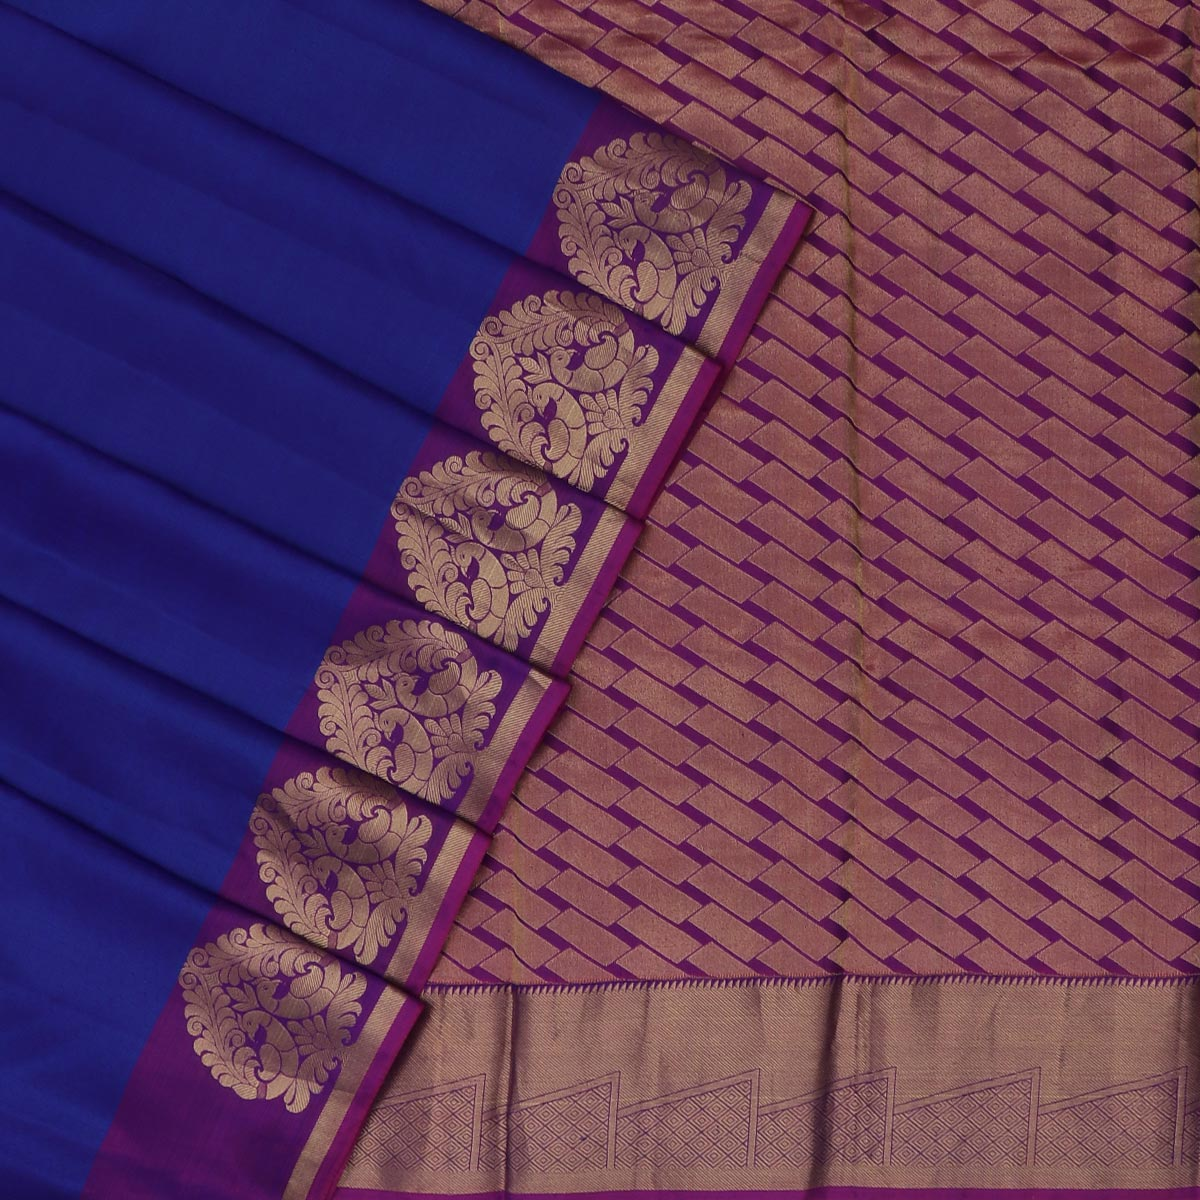 Kanjivaram Silk Saree Blue and Violet with Peacock Zari border